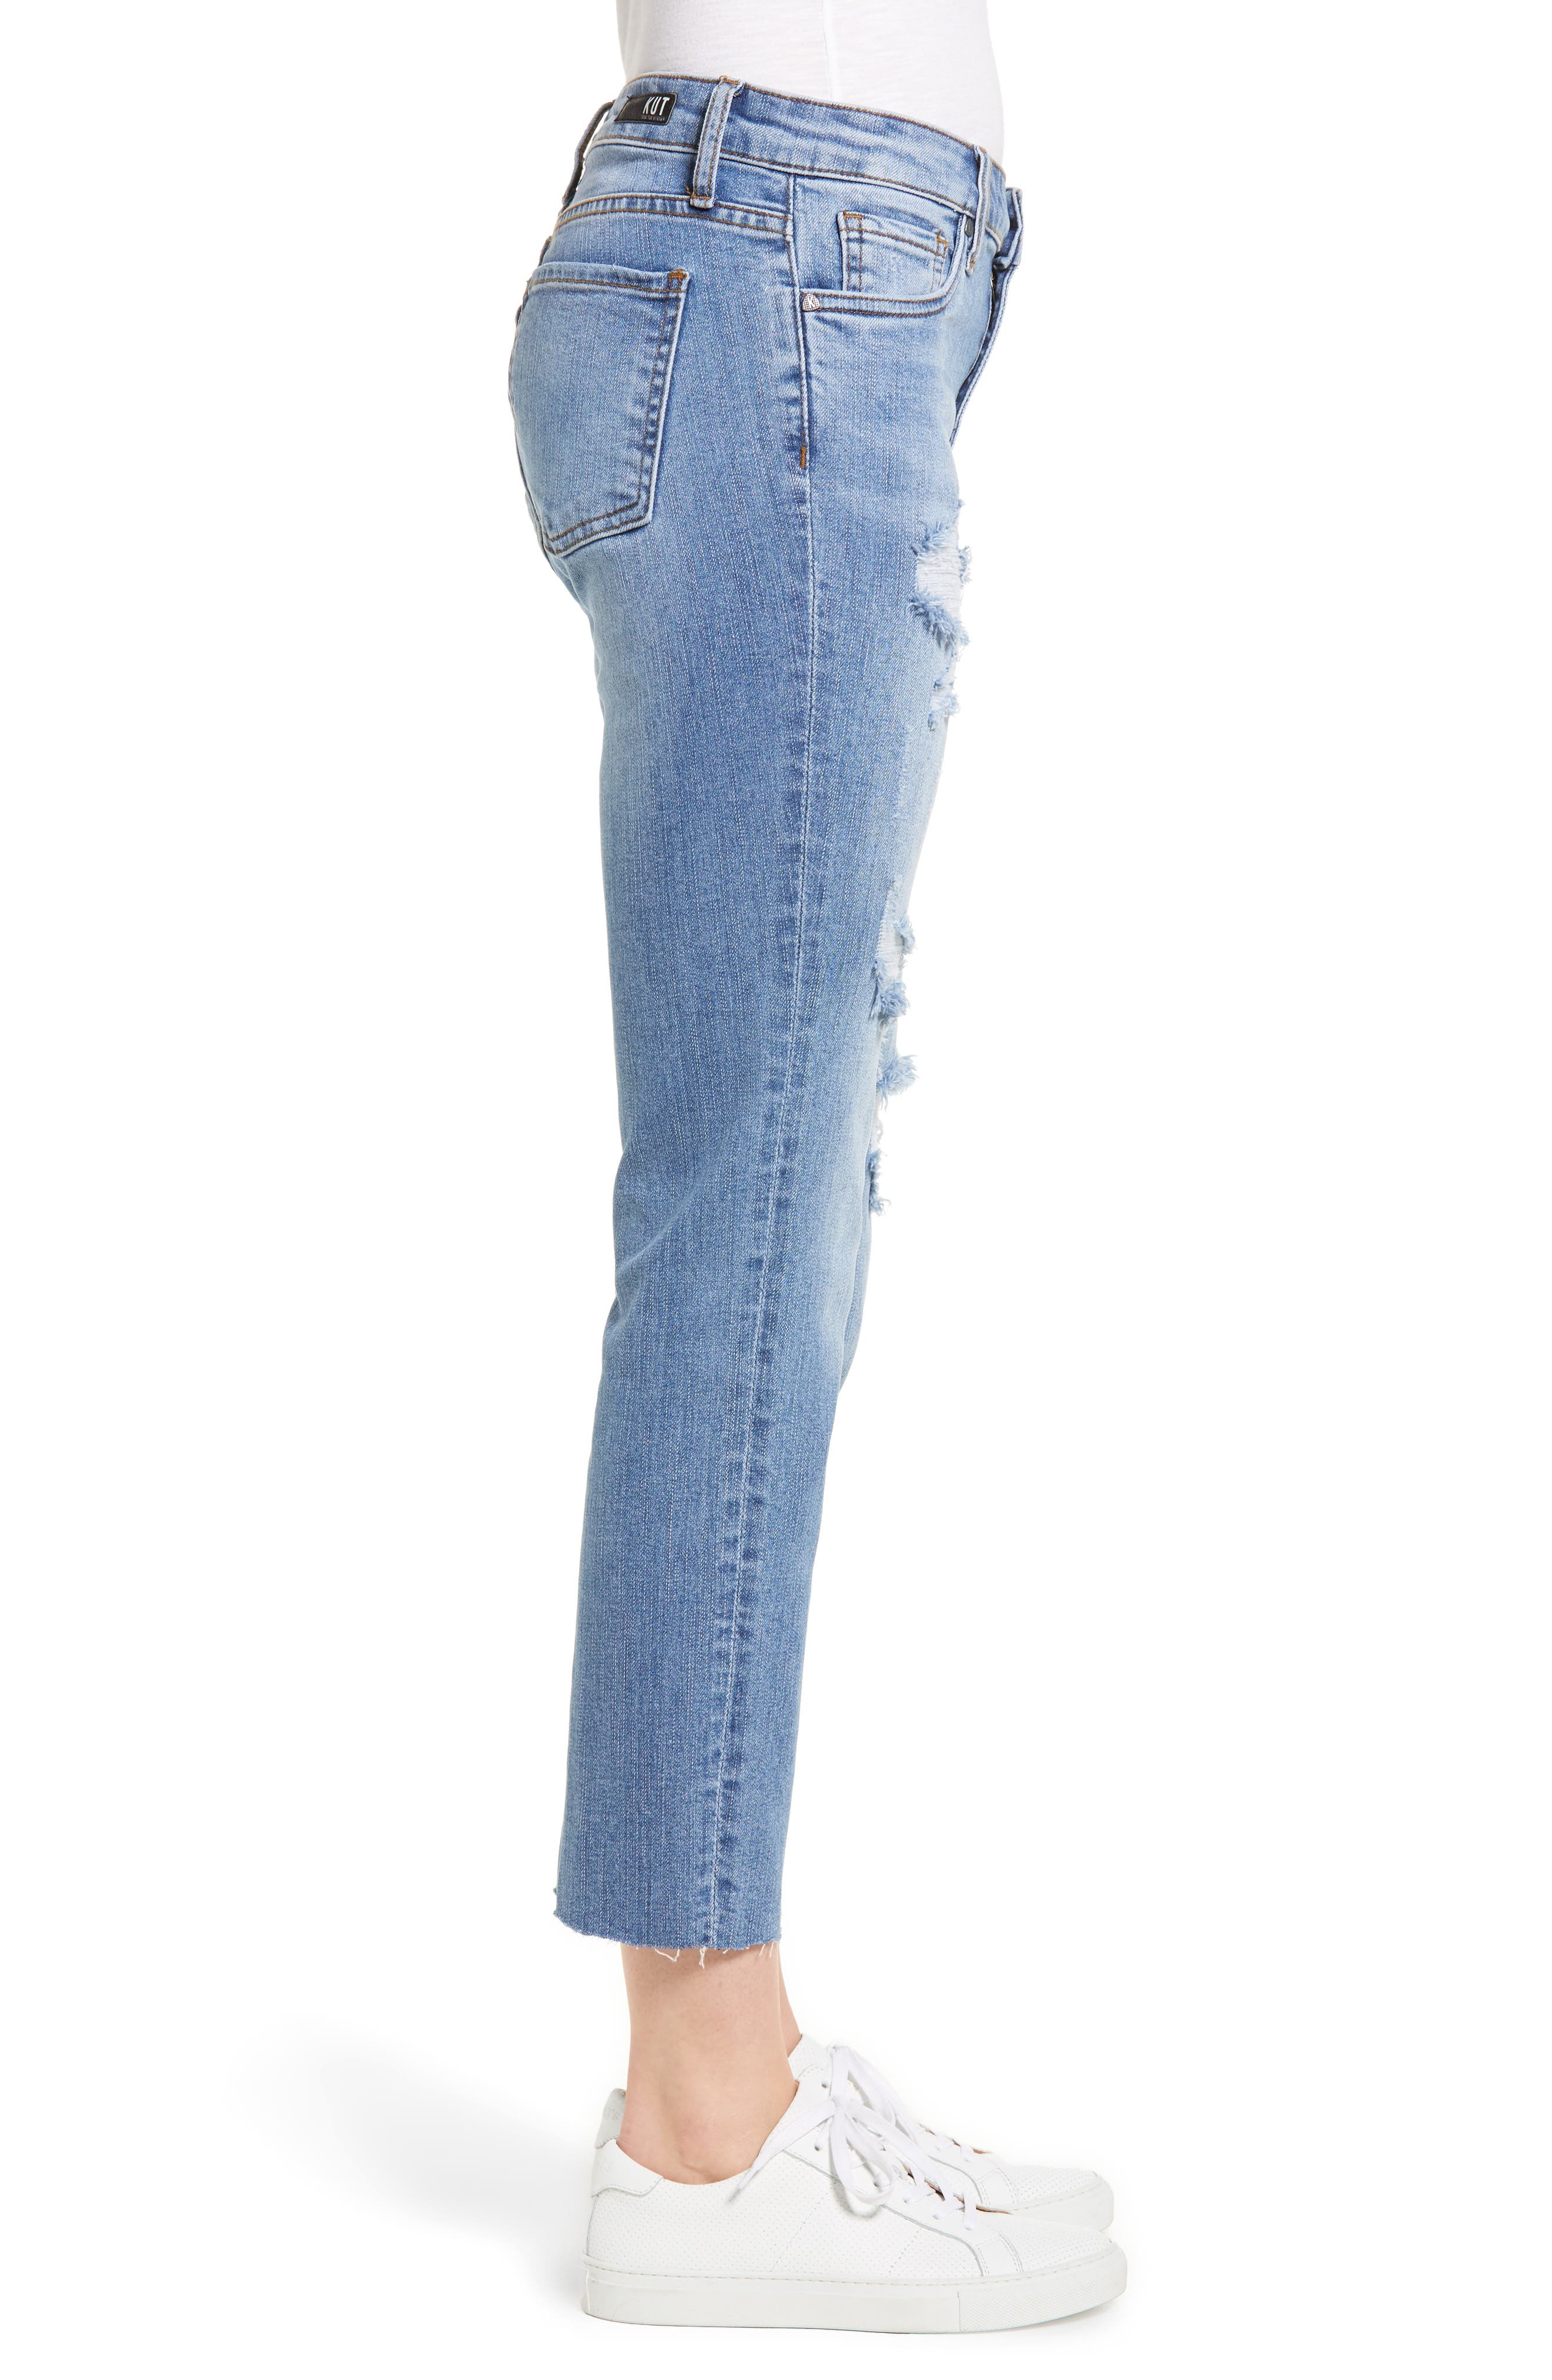 Reese Ripped Raw Edge Ankle Jeans,                             Alternate thumbnail 3, color,                             Assess